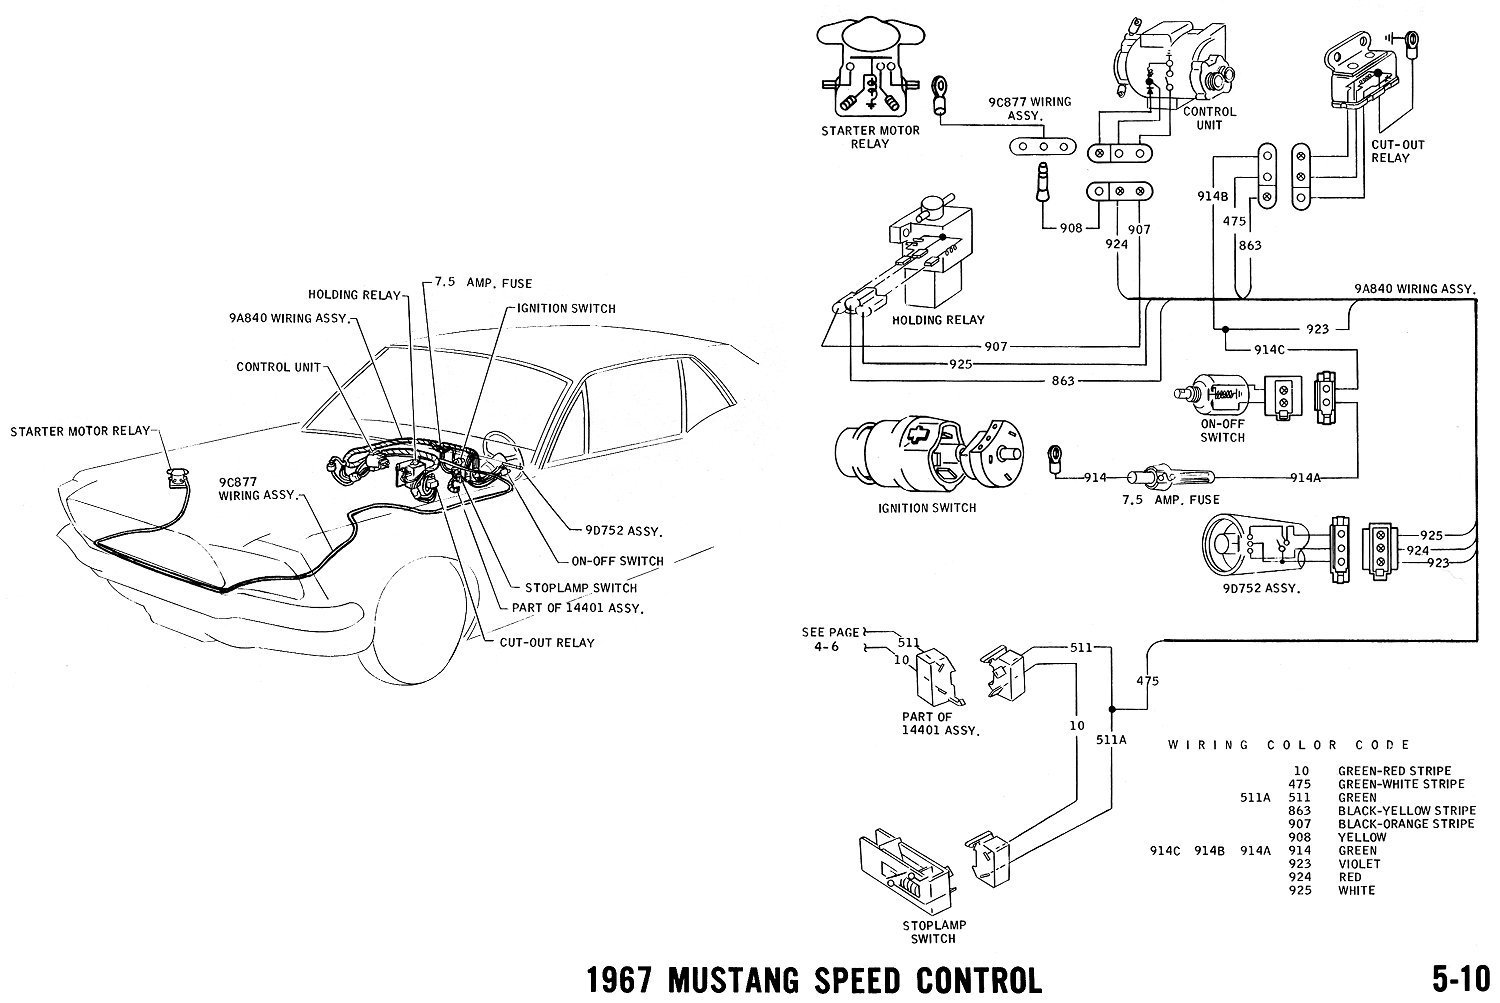 Ford Mustang Wiring Schematic And Vacuum Diagrams